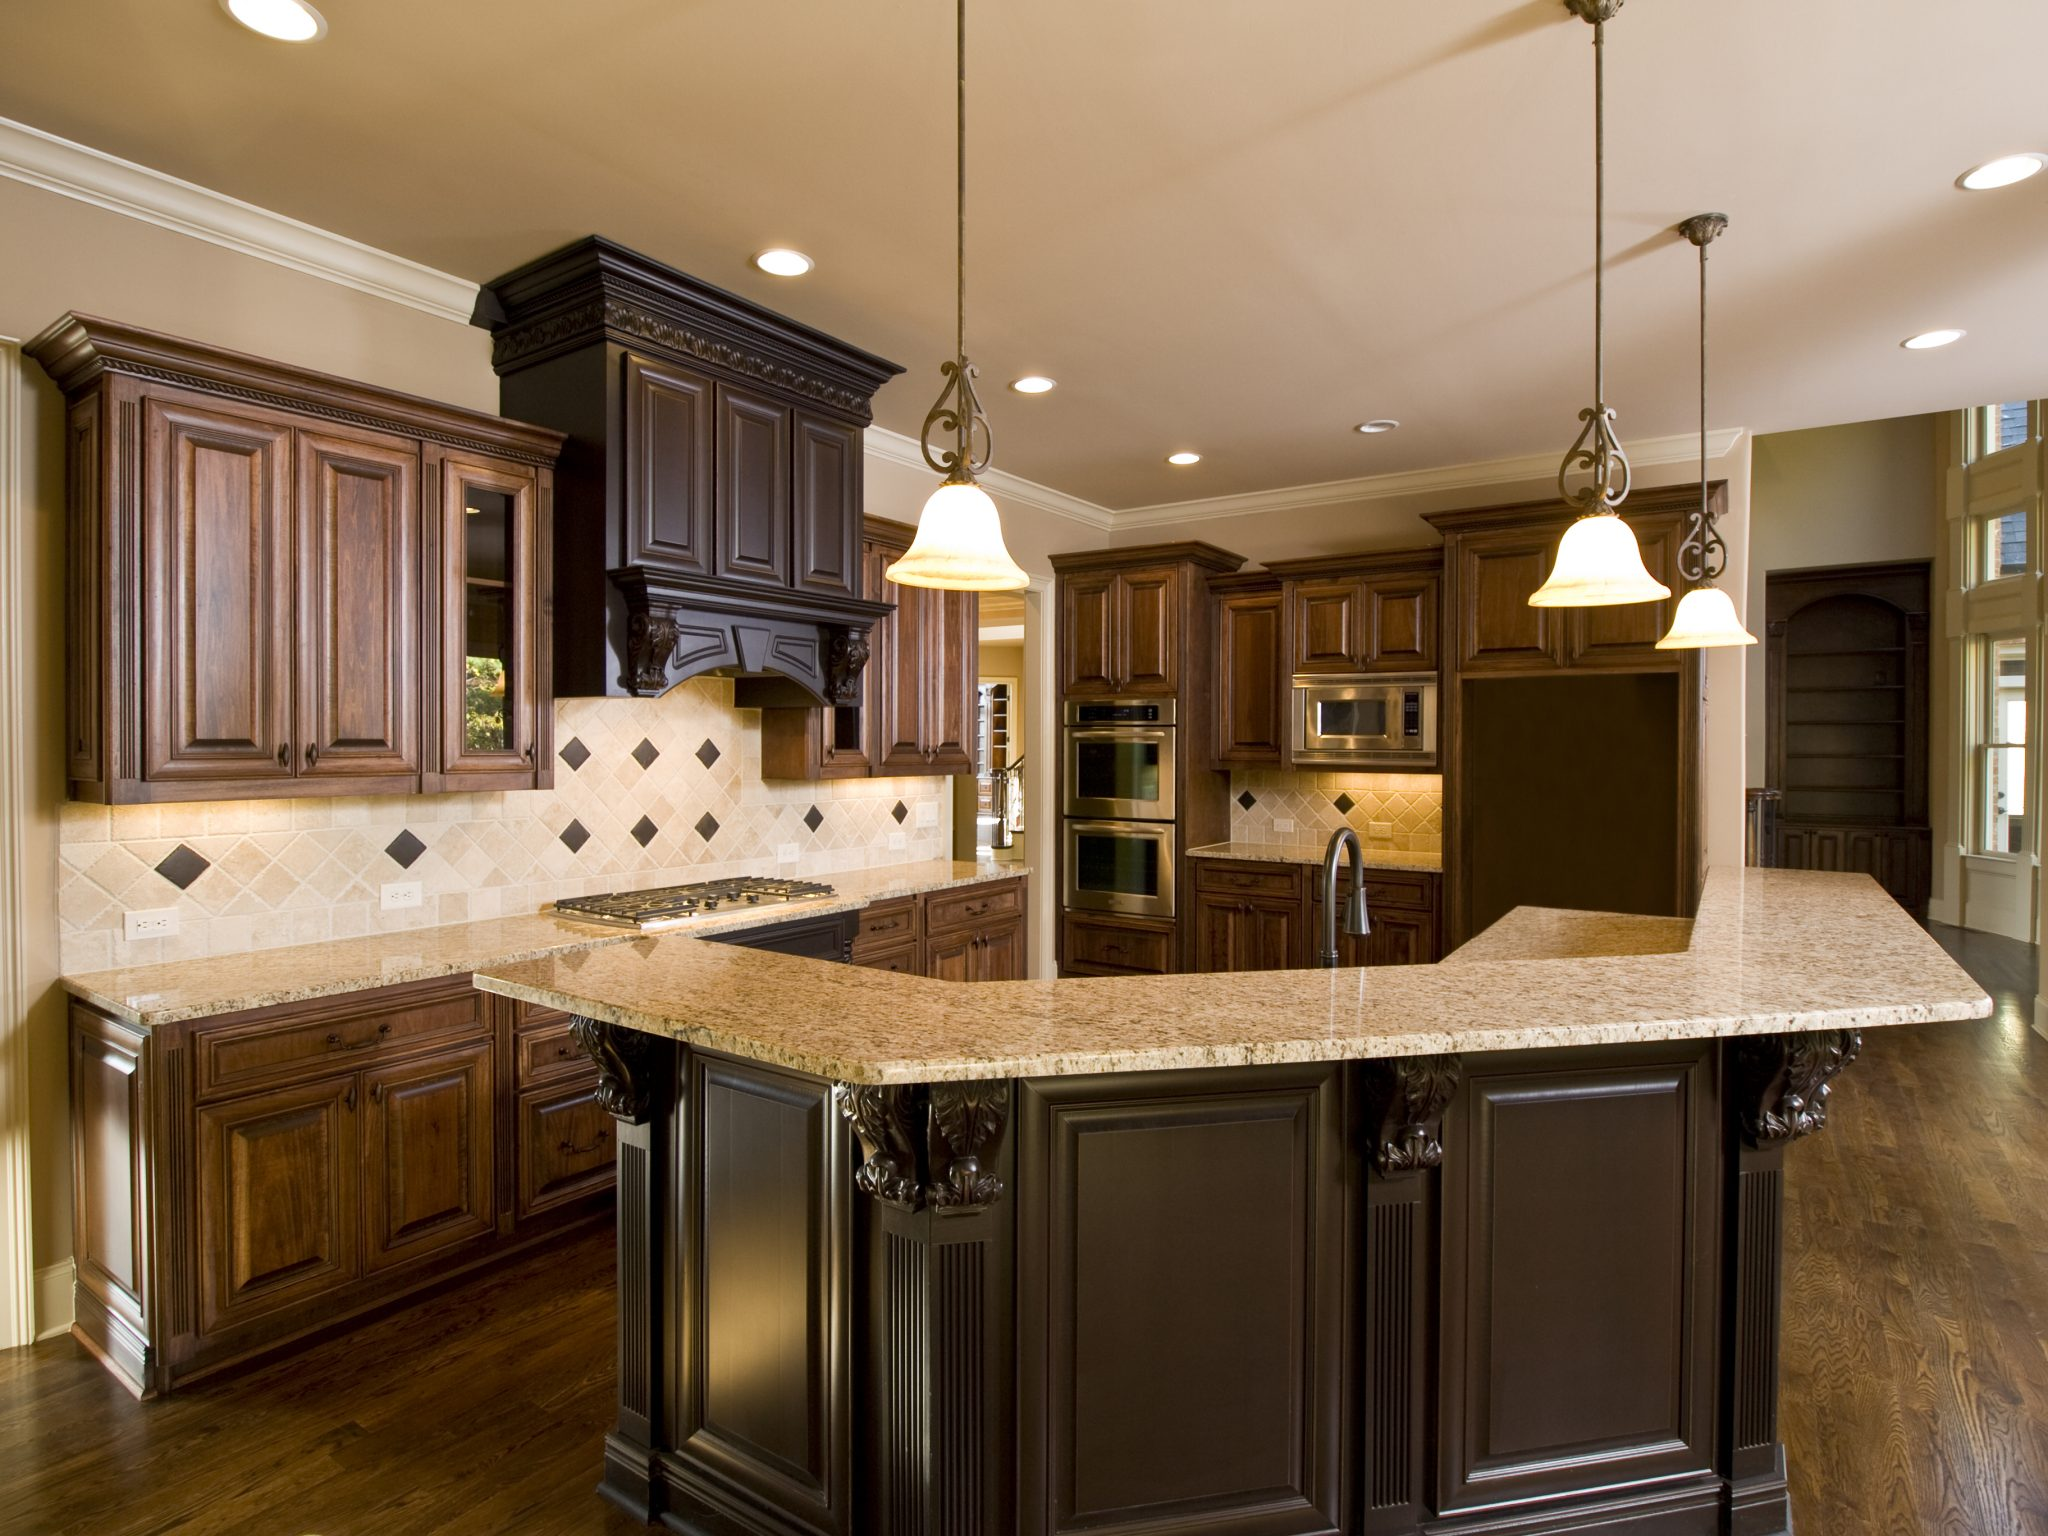 Kitchen And Home Interiors kitchen and home interiors home kitchen and home interiors About Us Kitchens